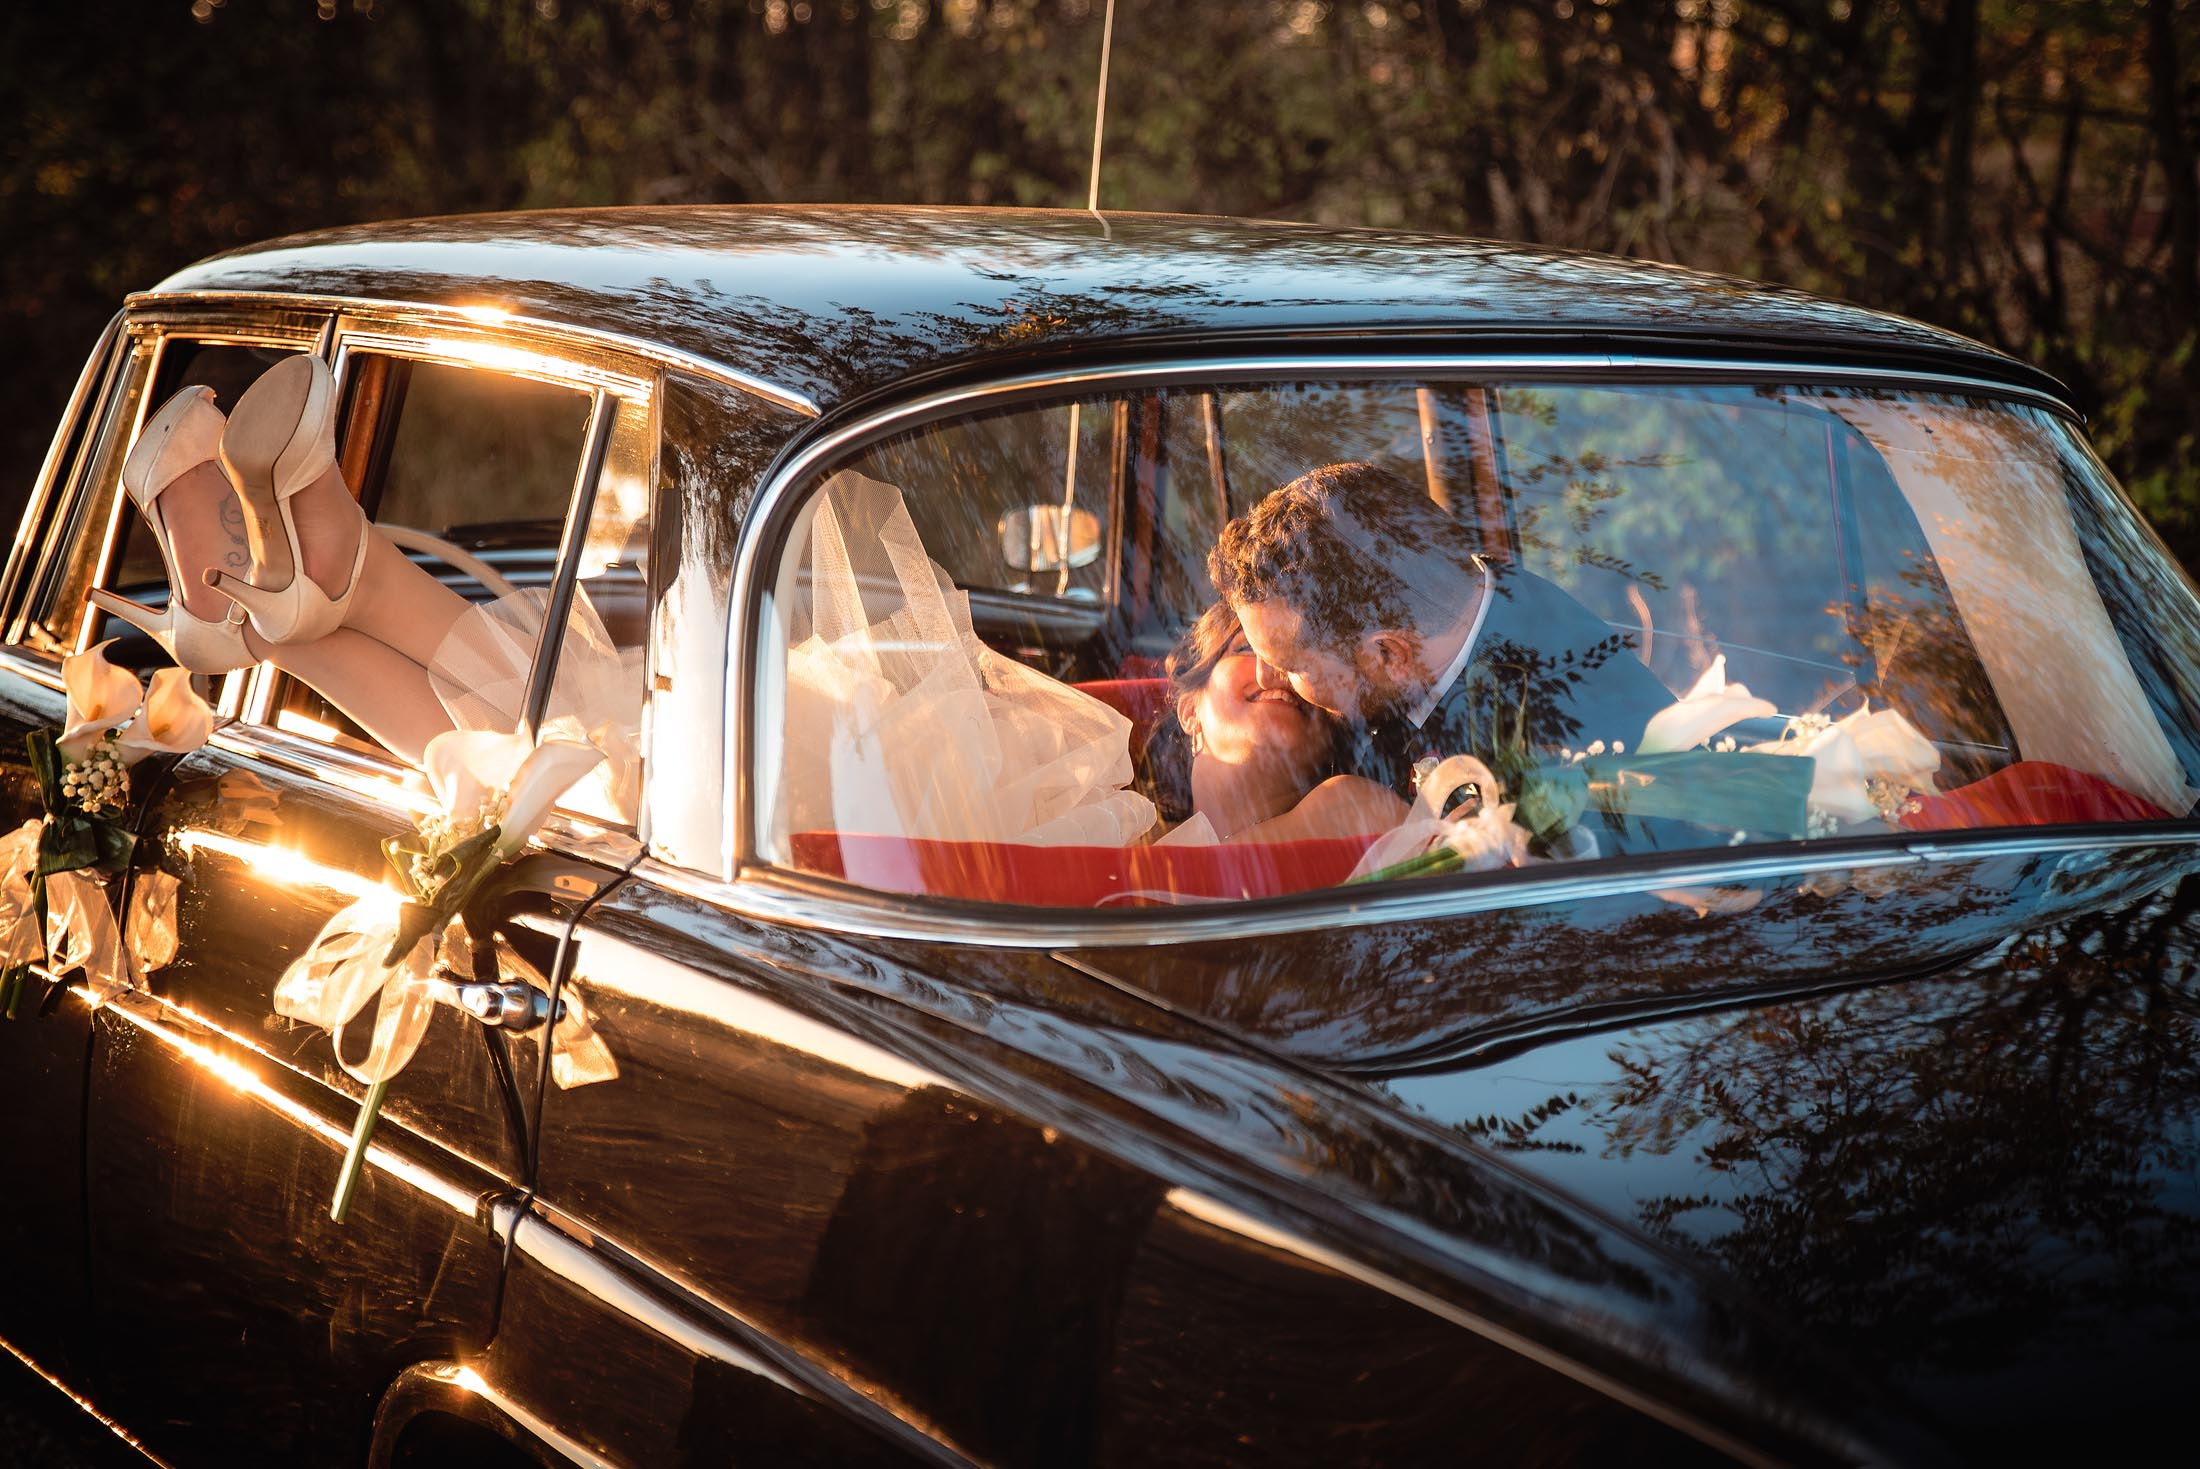 Boda de Antonio y Maite - Membrilla-0471-Edit